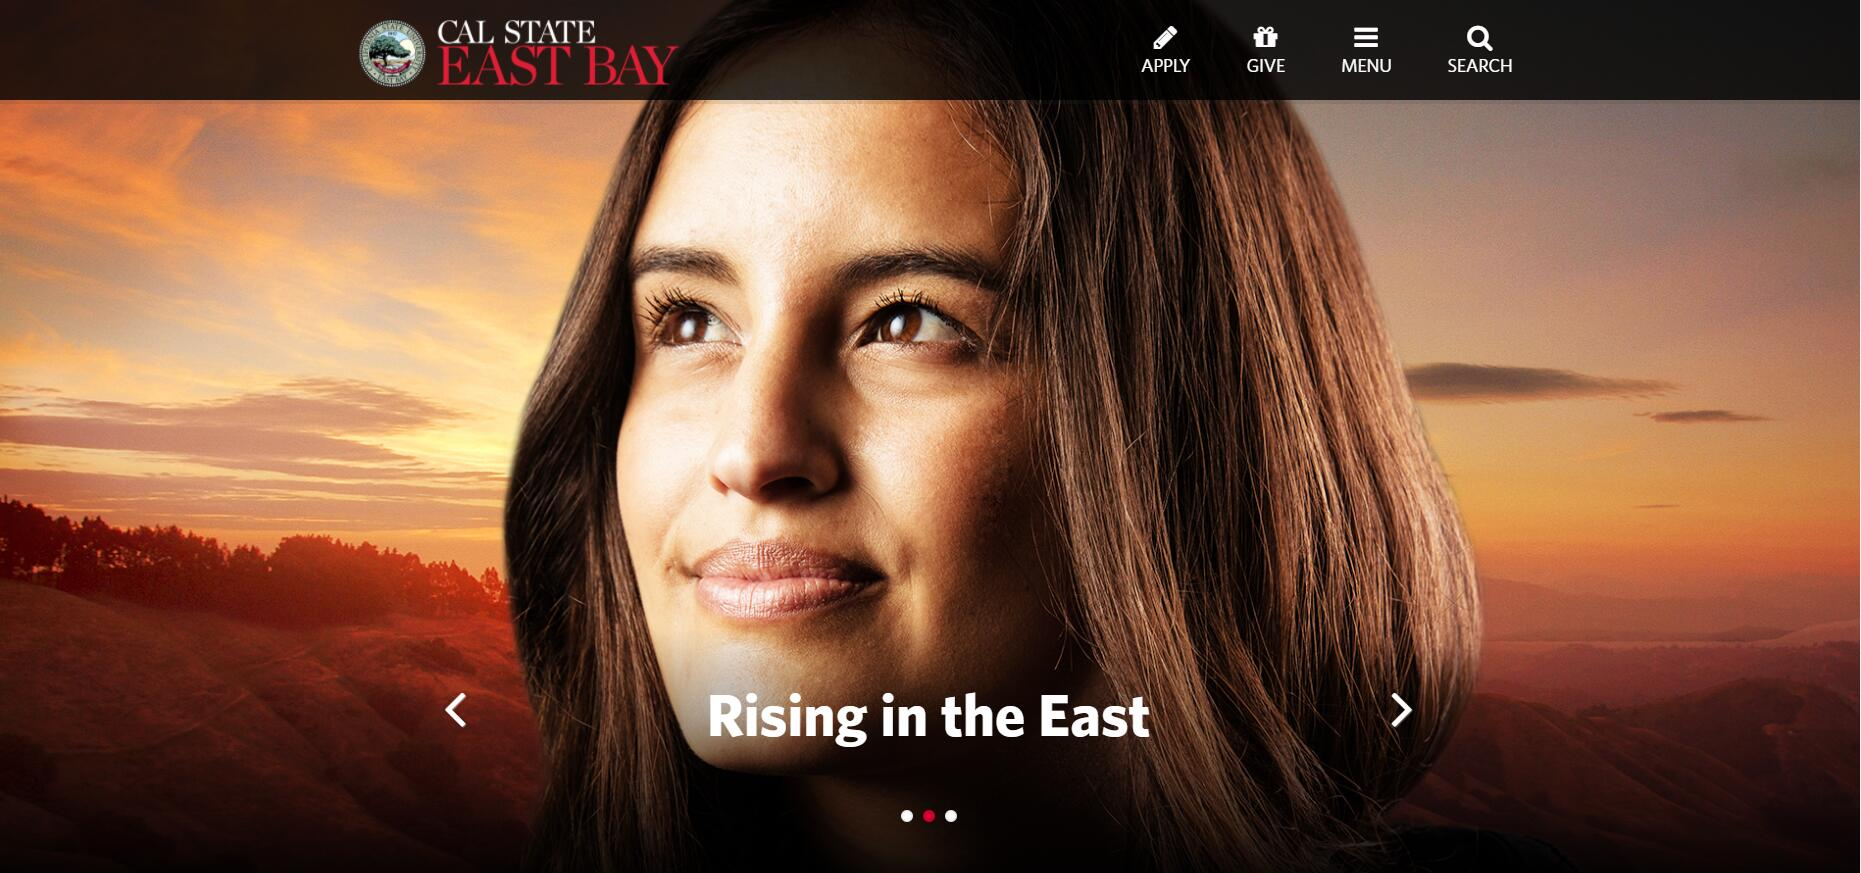 The Campaign for Cal State East Bay